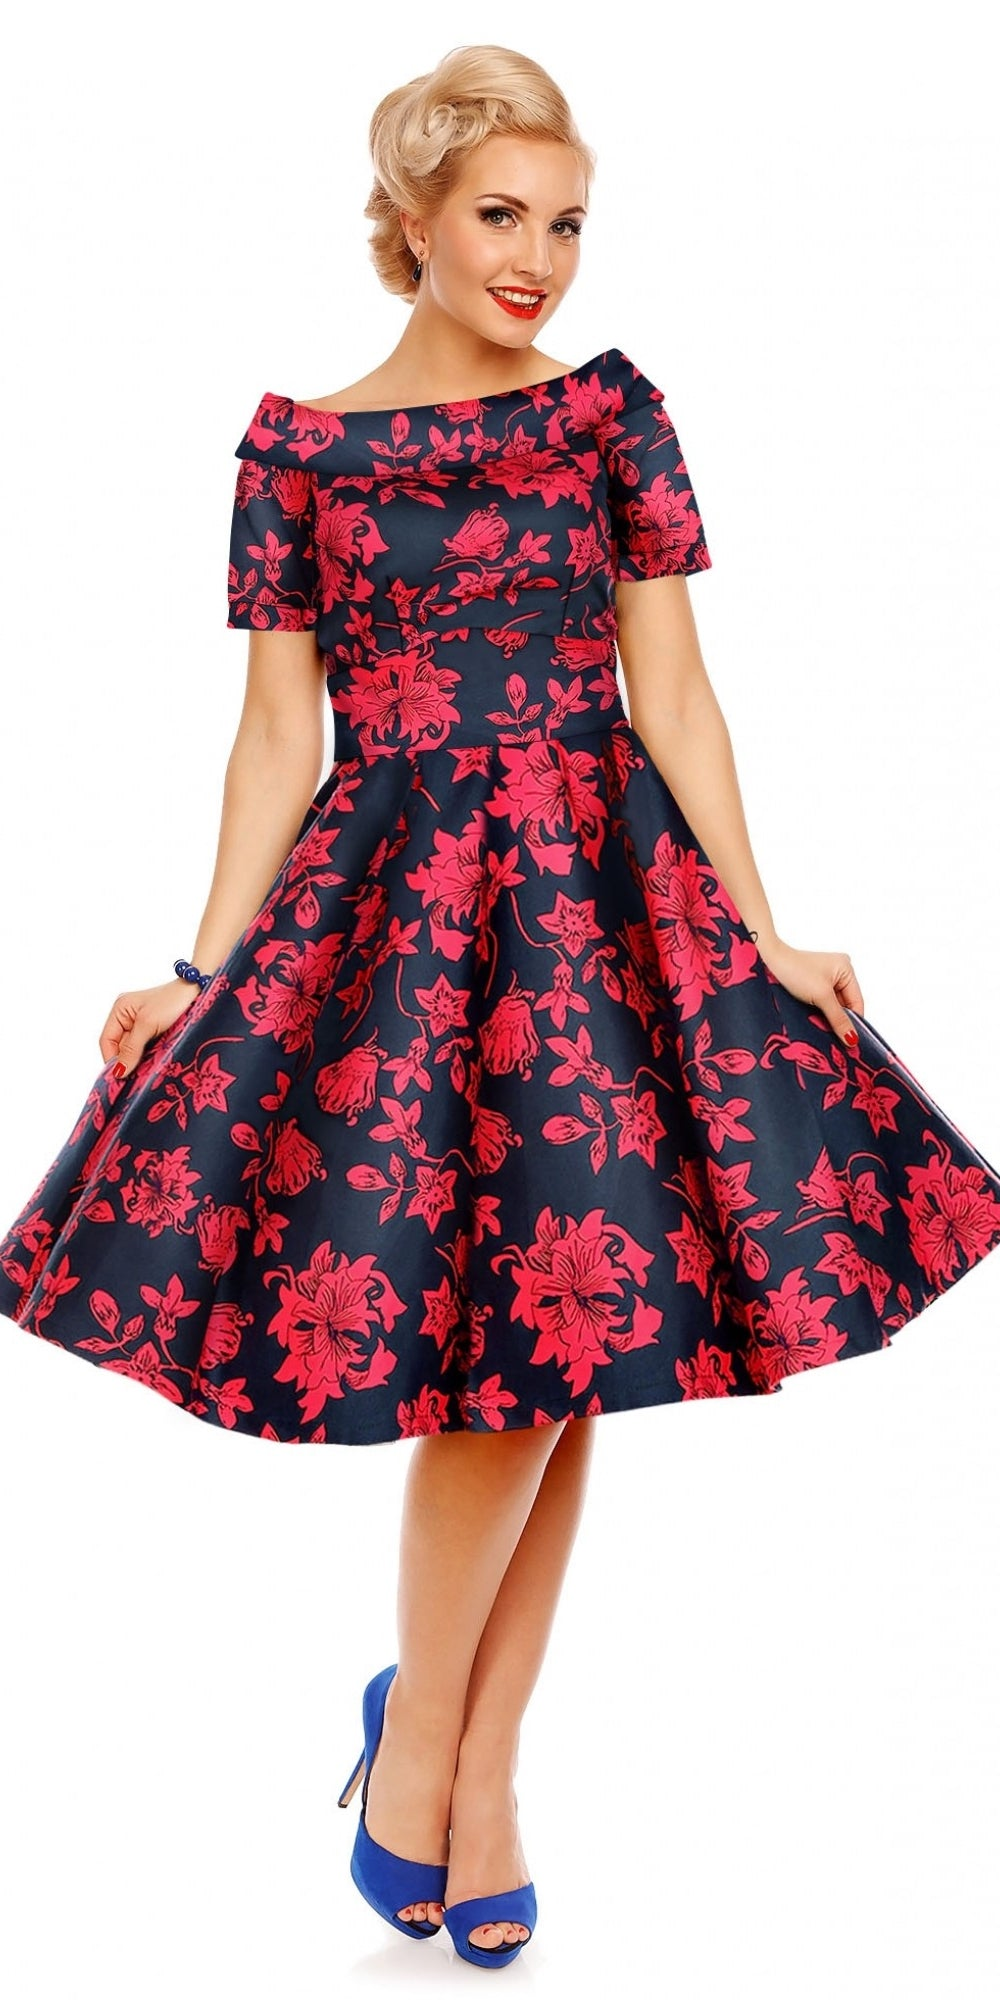 Darlene 50's Style Swing Dress Blue/Red Floral